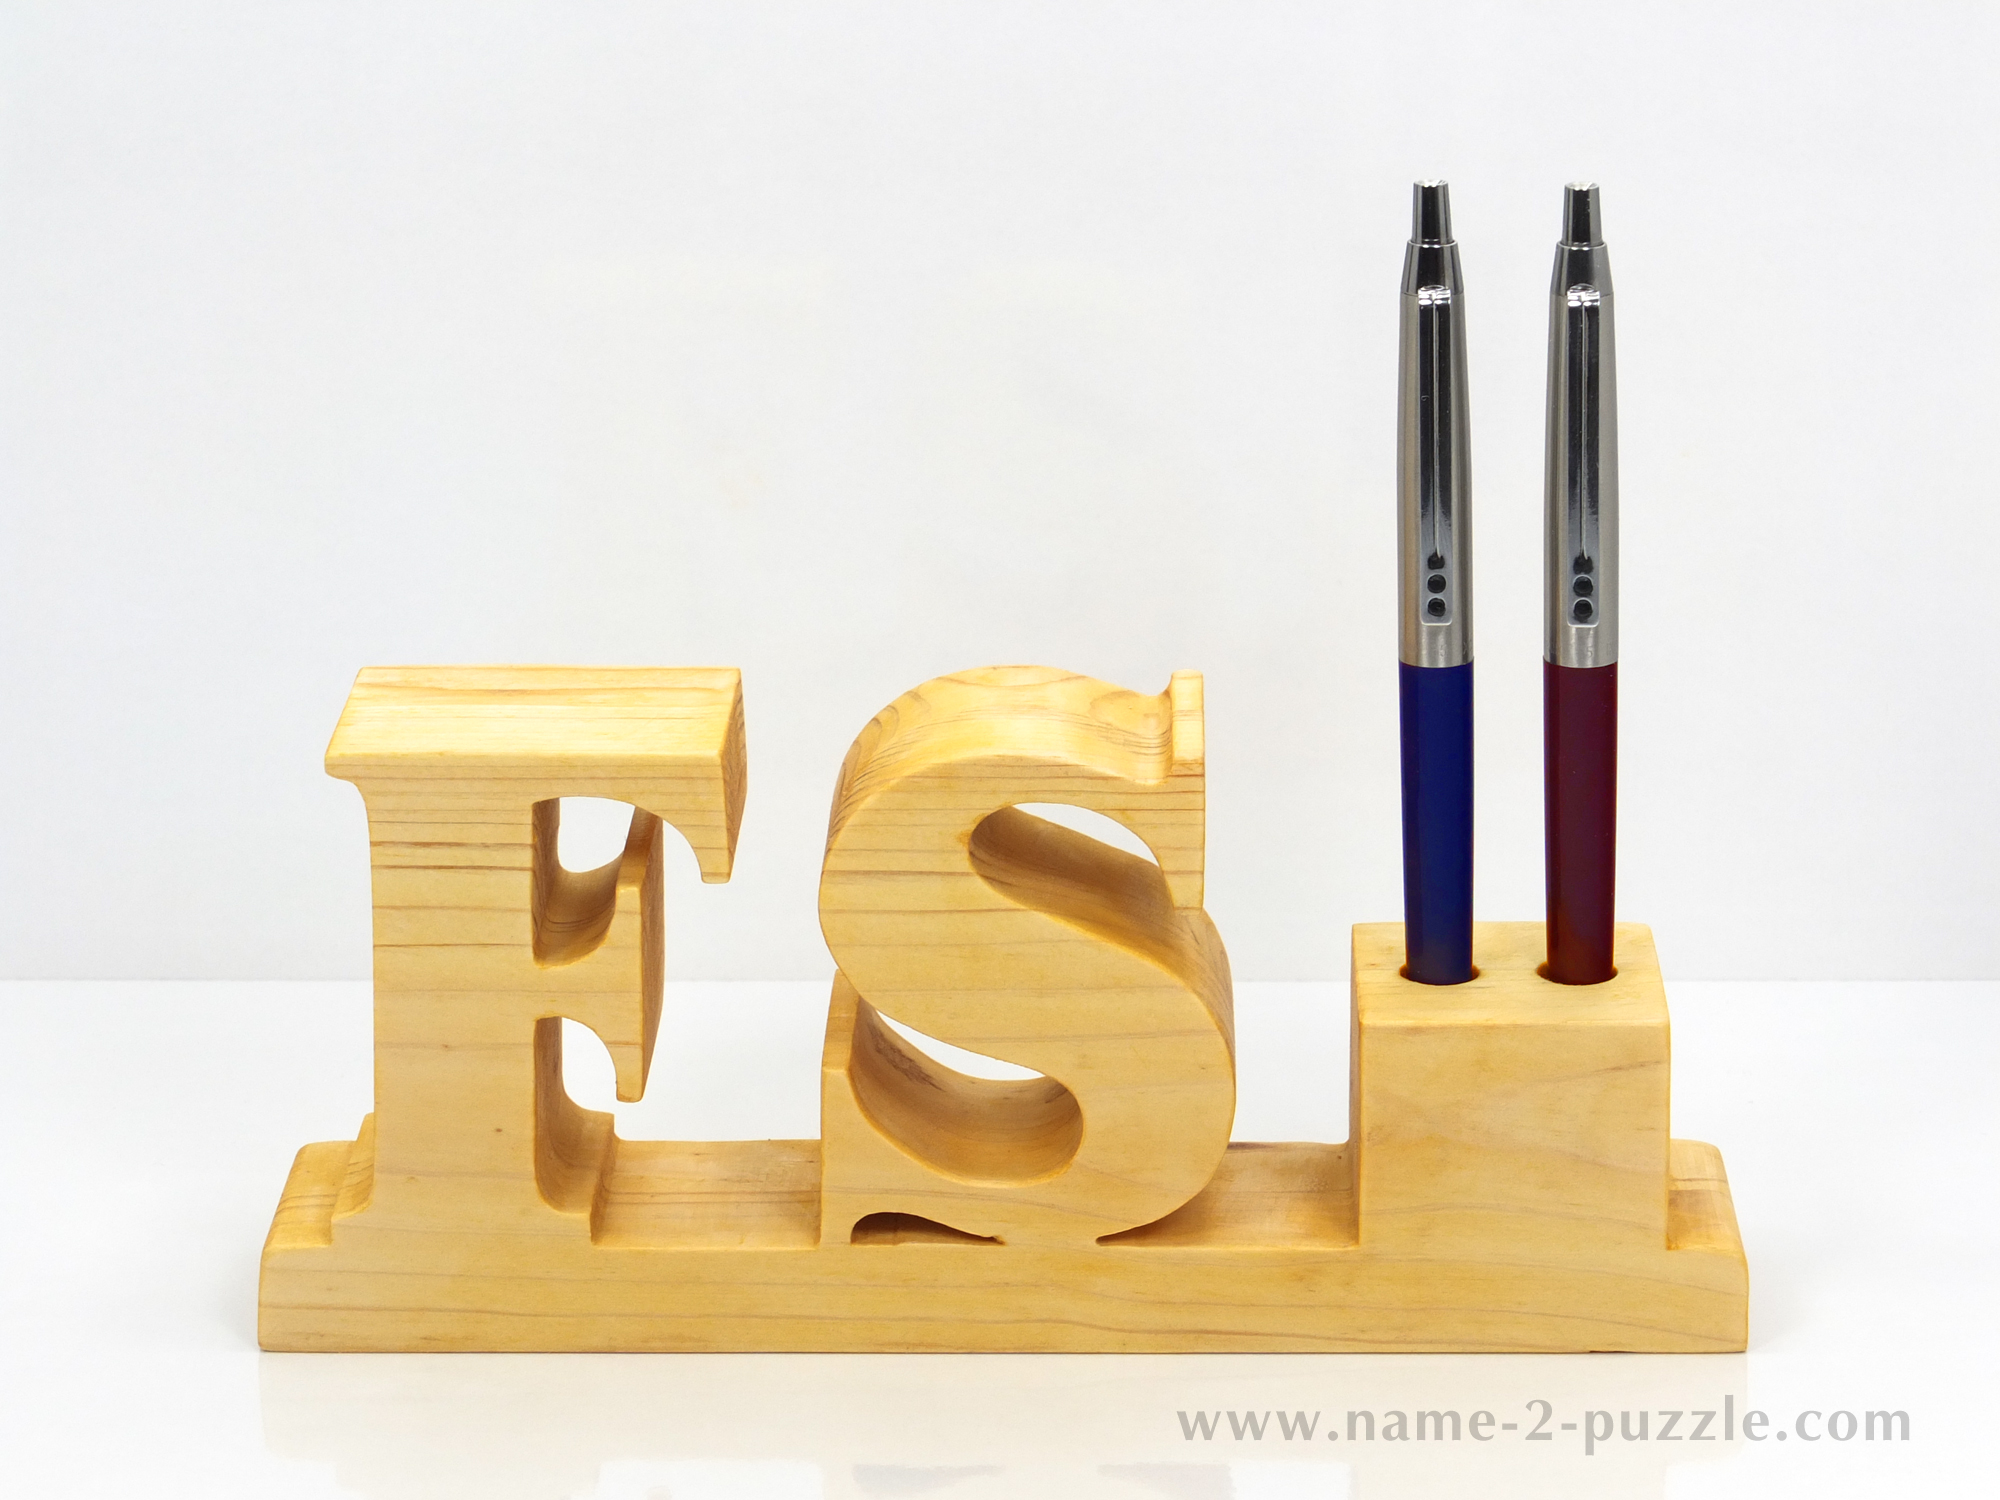 Ofiice gift ideas unique 3d name puzzles best personalized gifts pen holders 3 wooden gifts negle Choice Image